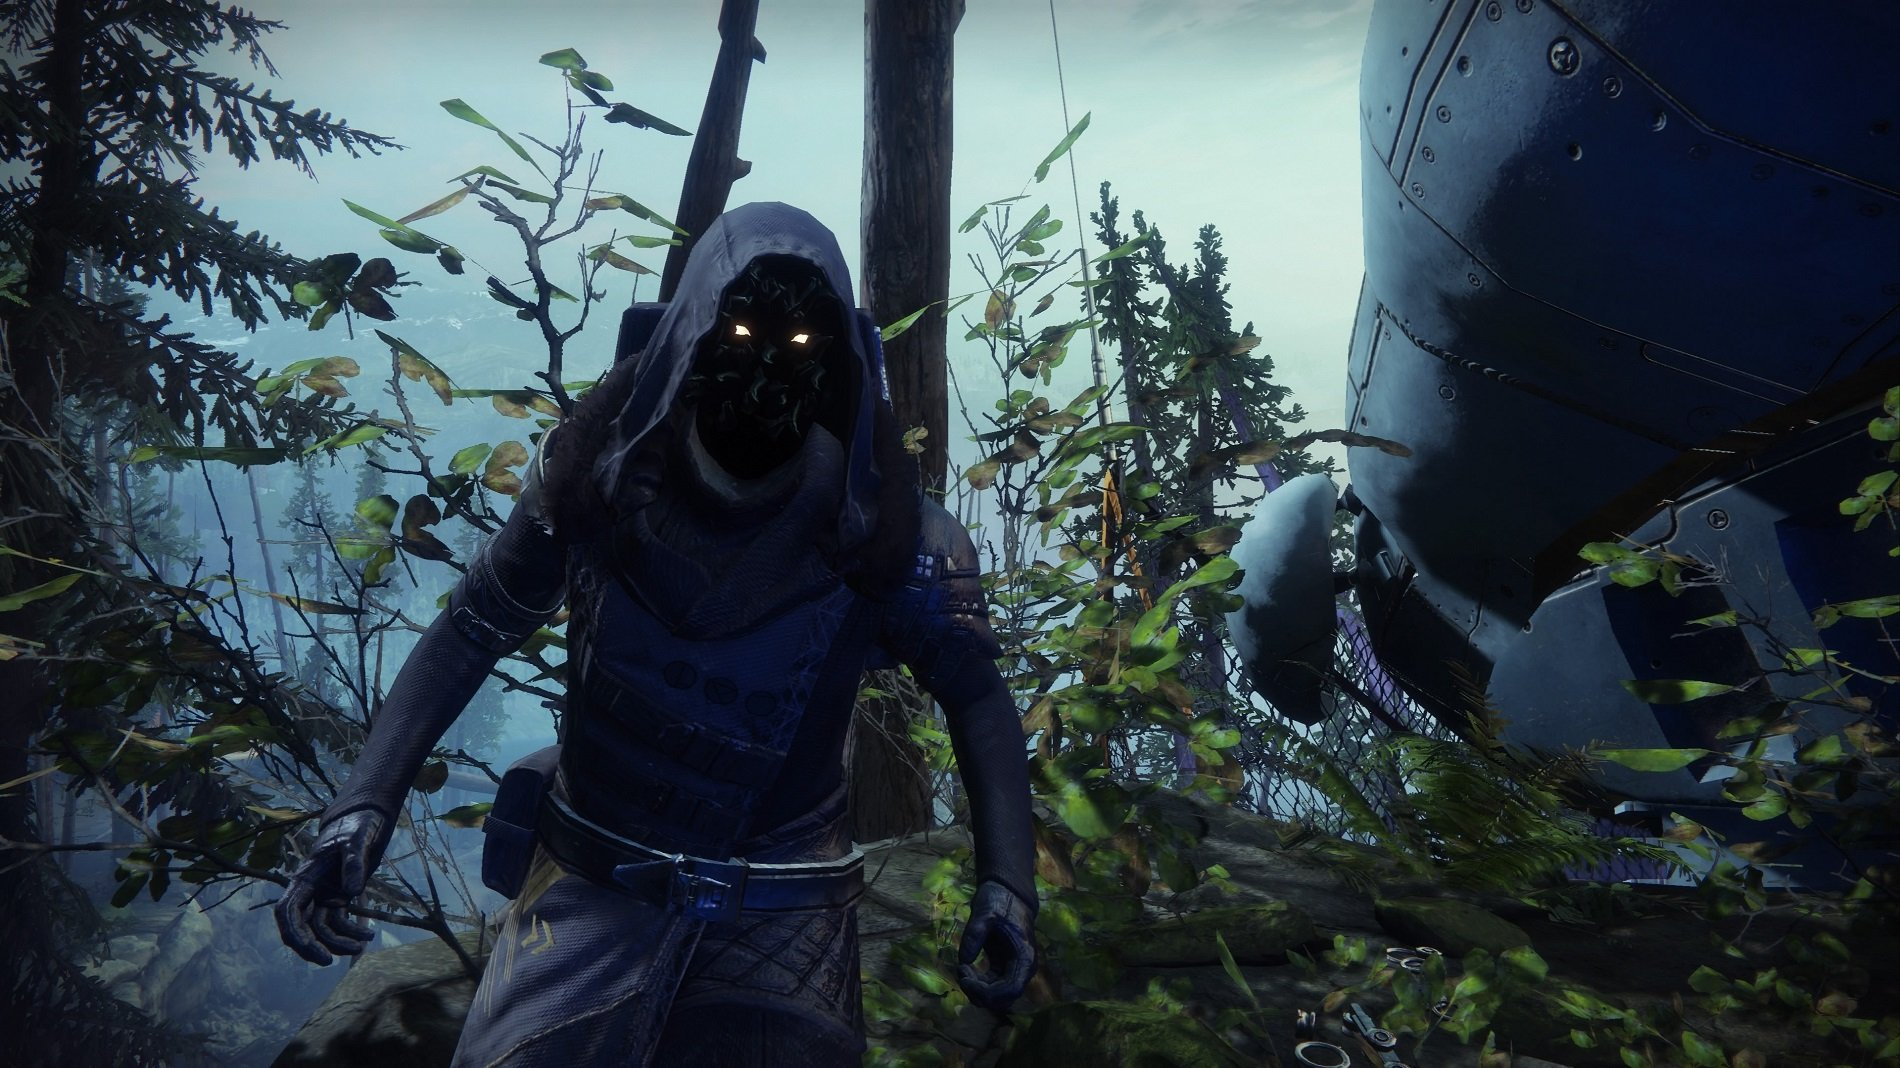 Where to find Xur in Destiny 2 - August 7, 2020